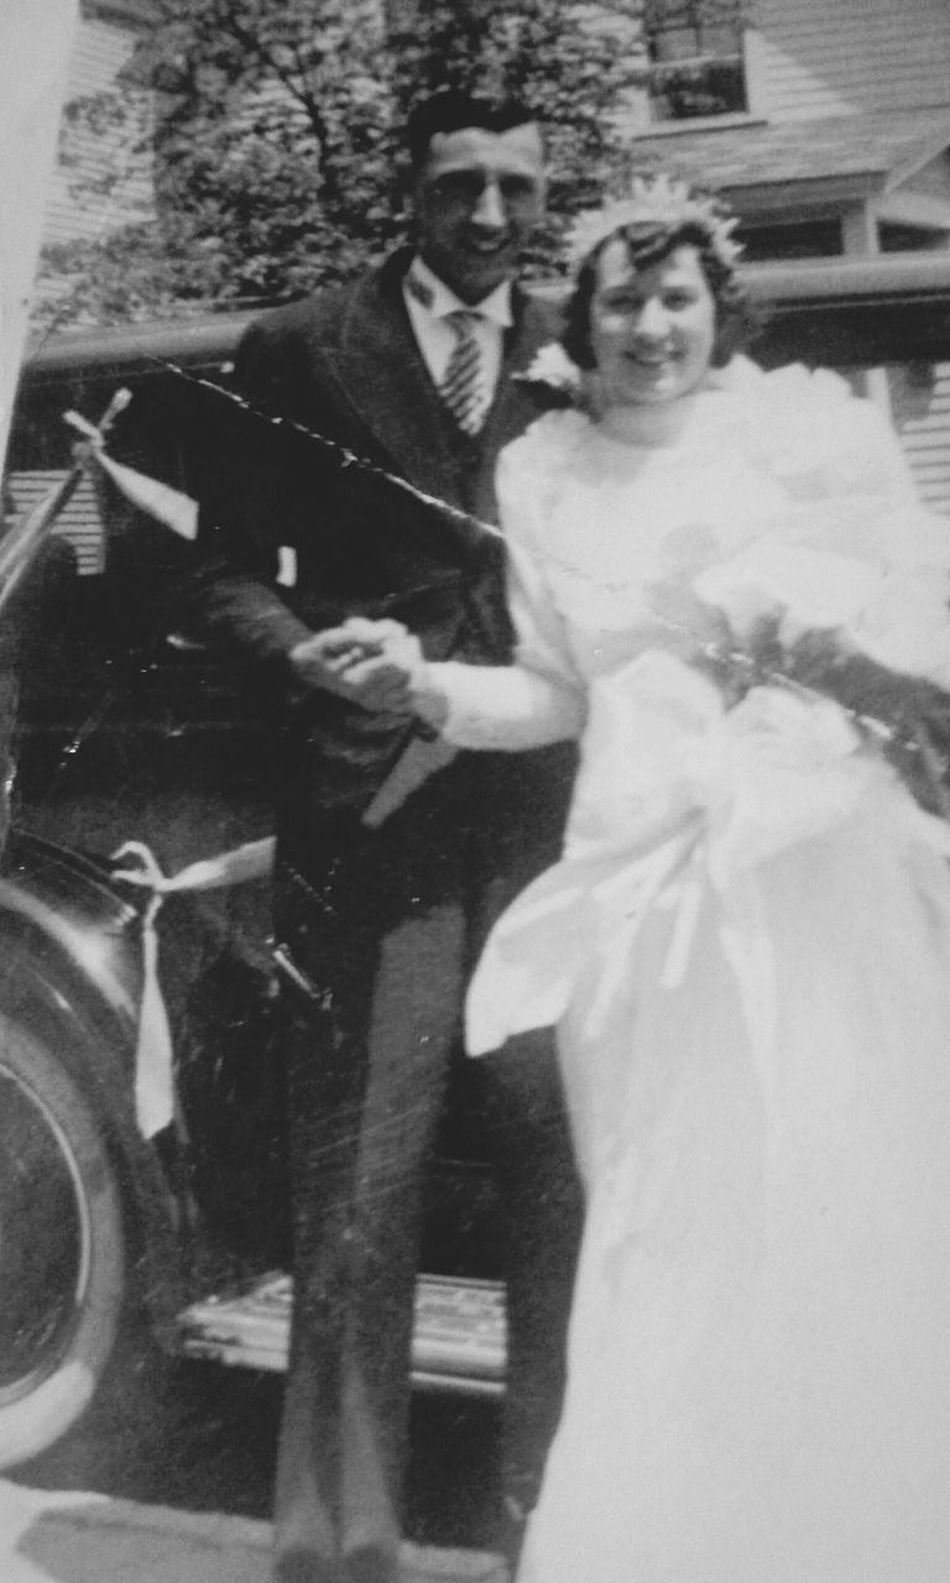 1930s Wedding Dress Wedding Bride Wife Two People Full Length Archival Real People People Husband Togetherness Enjoying Life Weddinginspiration Love❤